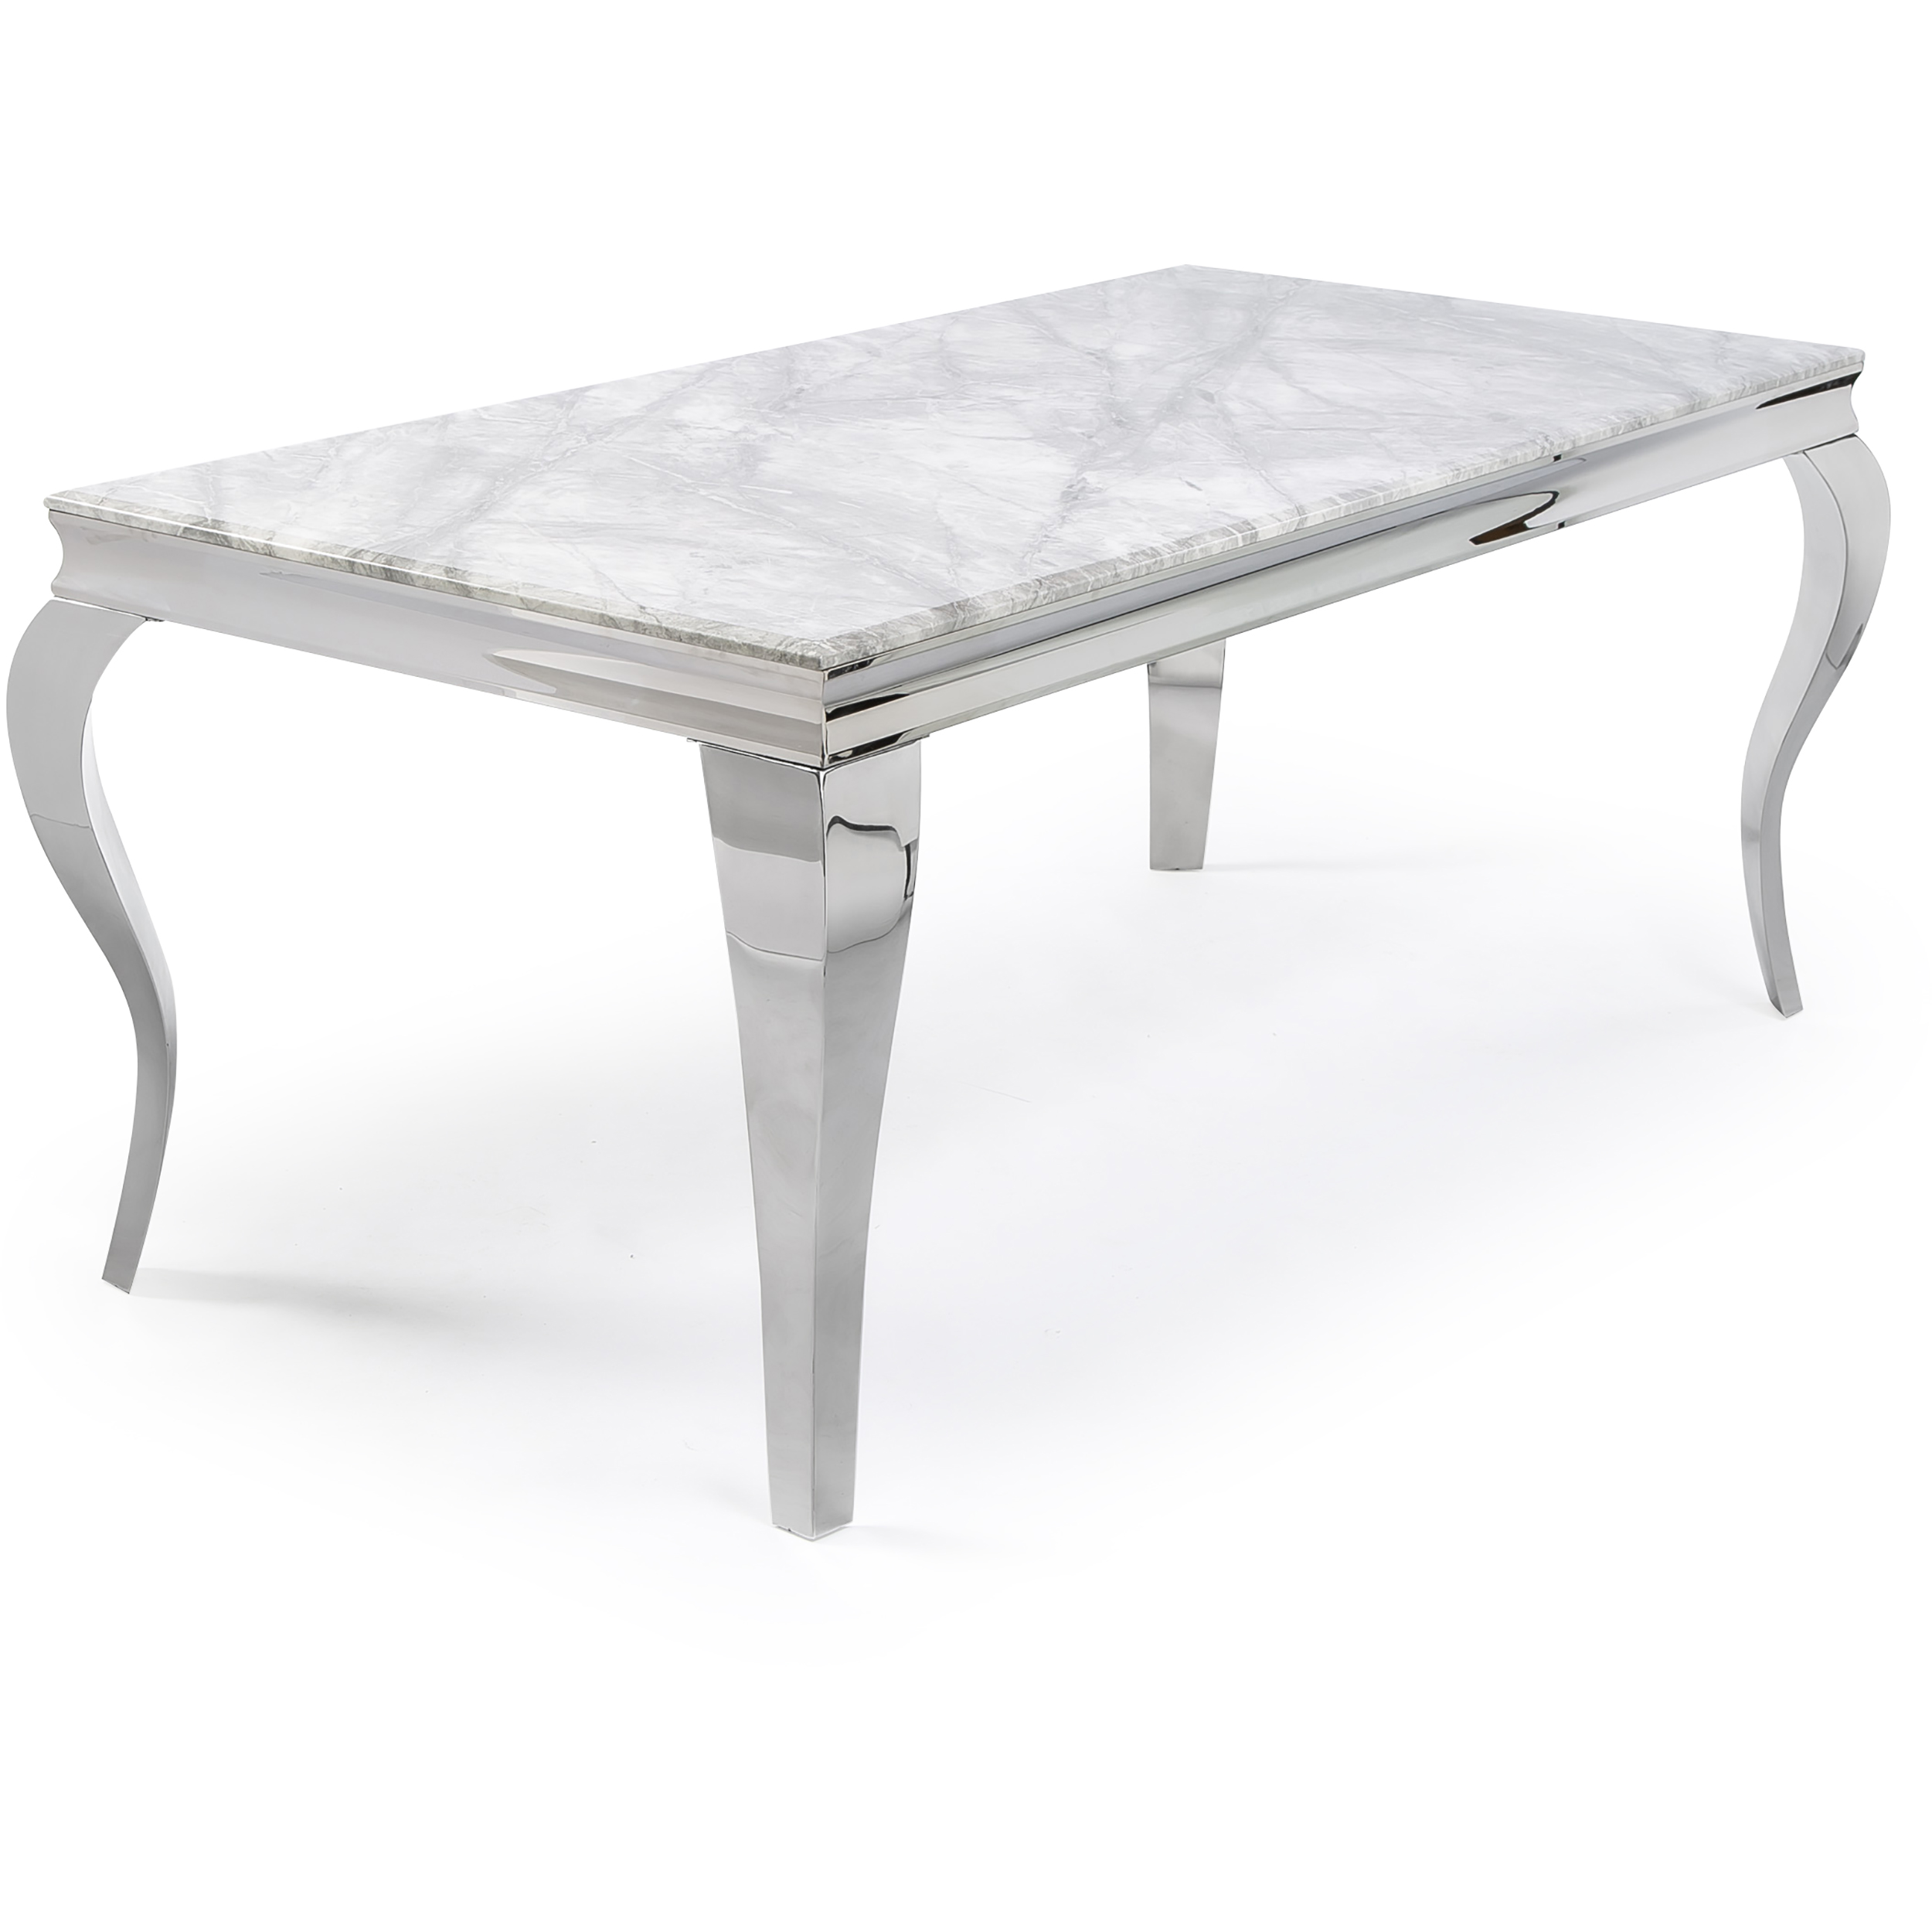 1.8m Louis Polished Steel Dining Table with Grey Marble Top